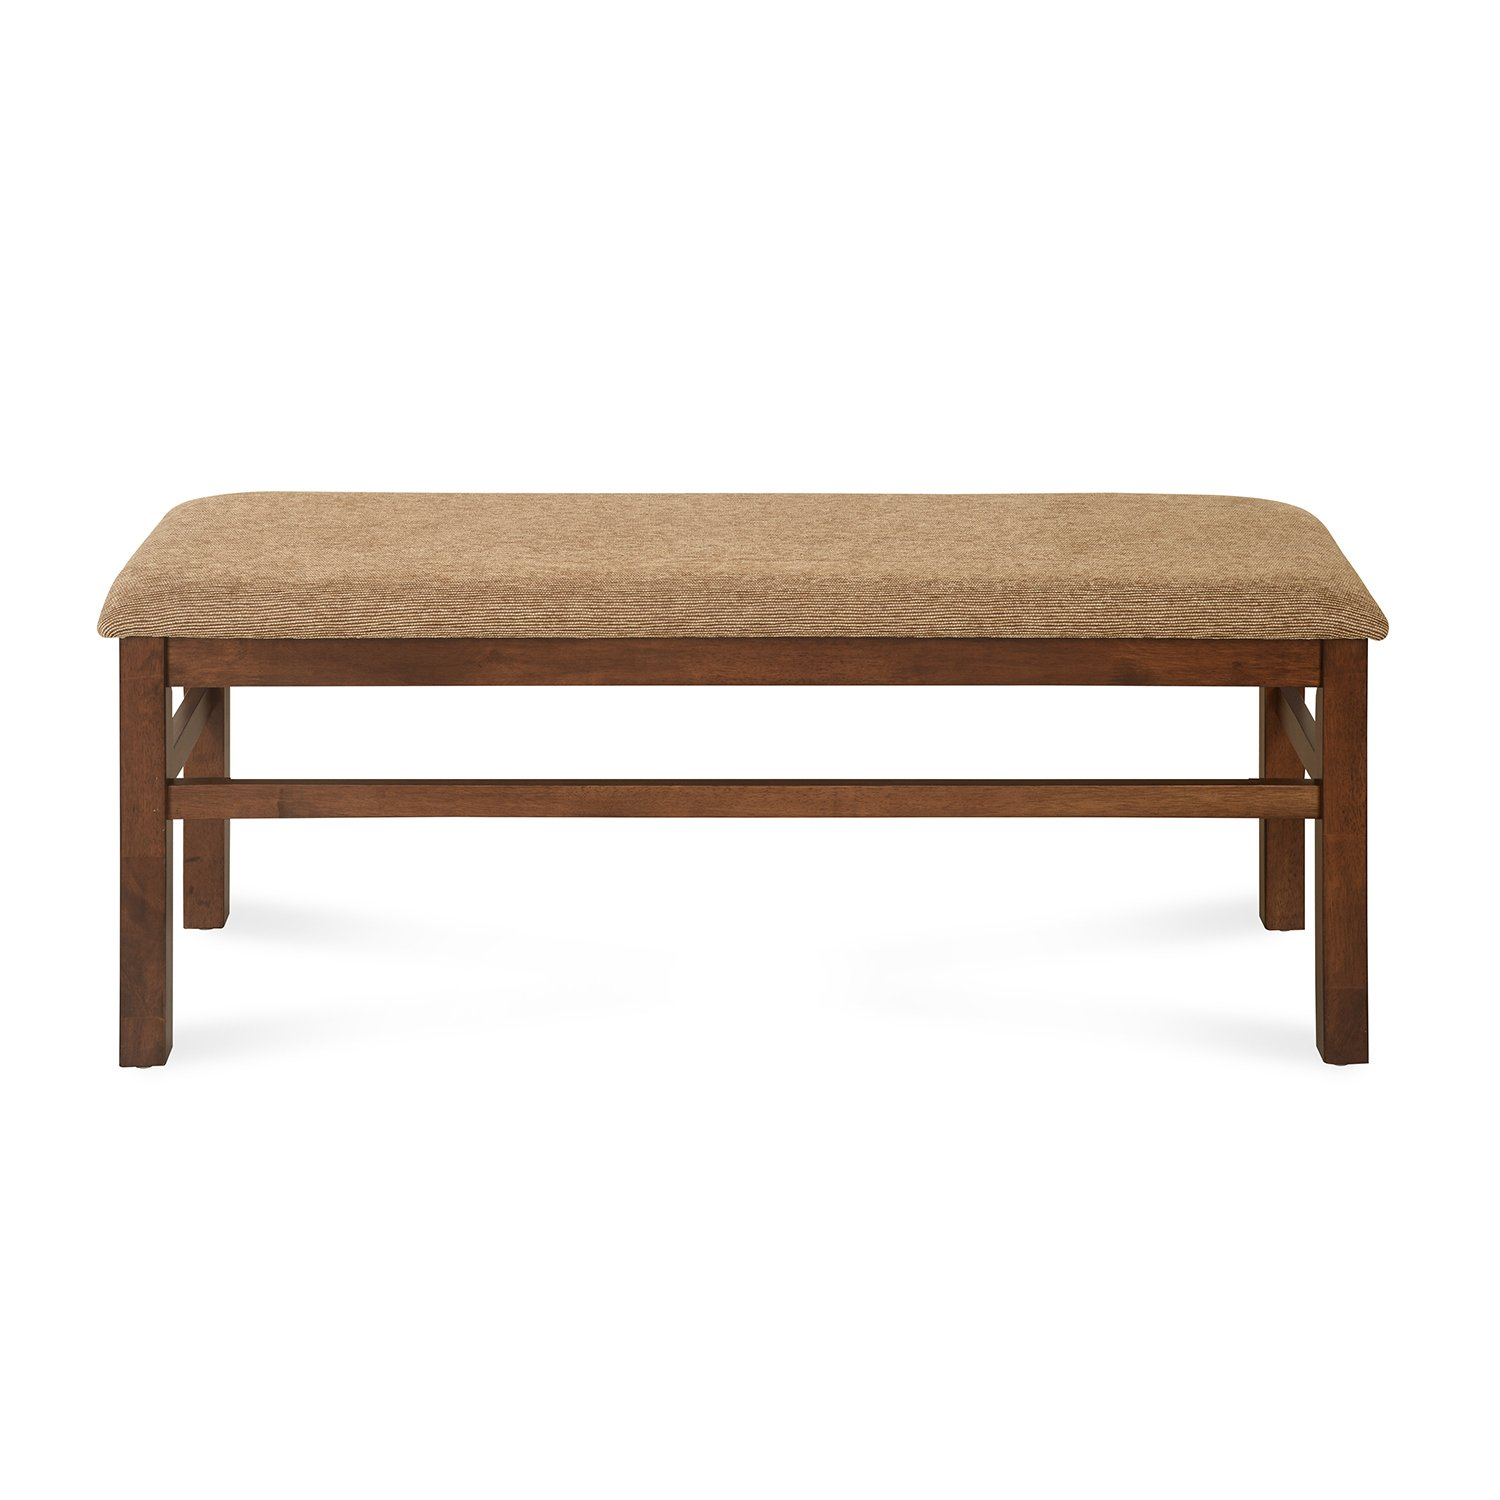 Gormice  Dining Bench (Finish : Dark Walnut) size 120x40x48 cm